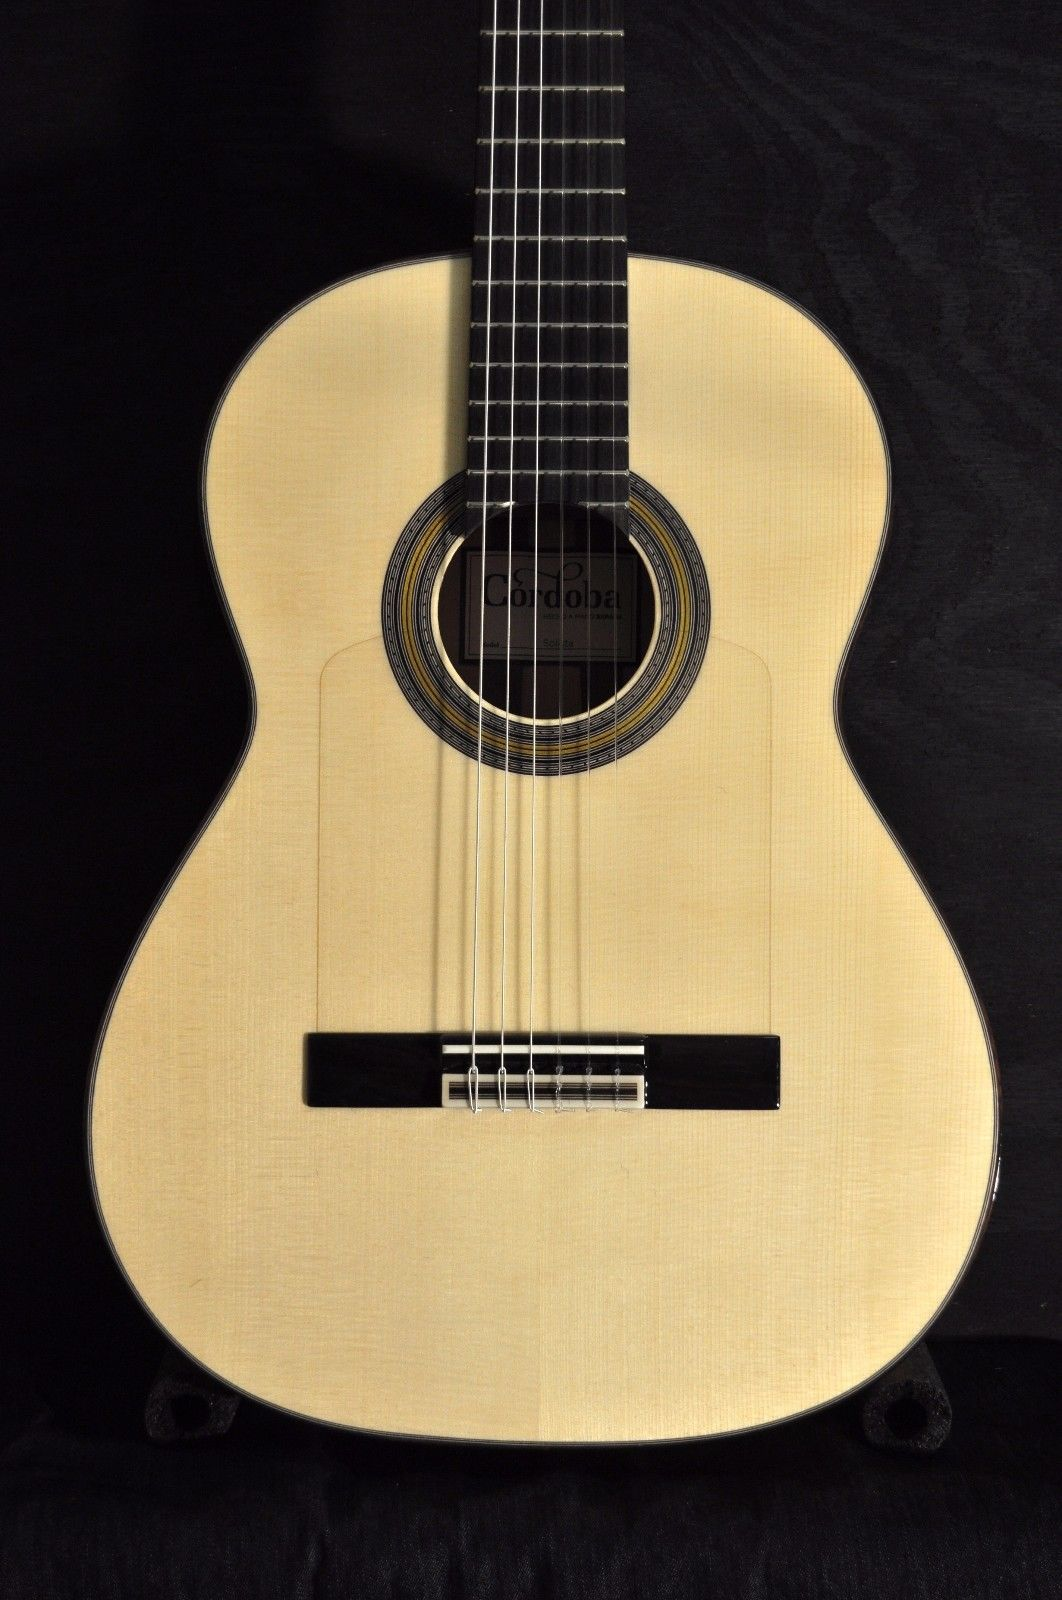 Cordoba Solista Acoustic Nylon String Classical Guitar with Gig Bag